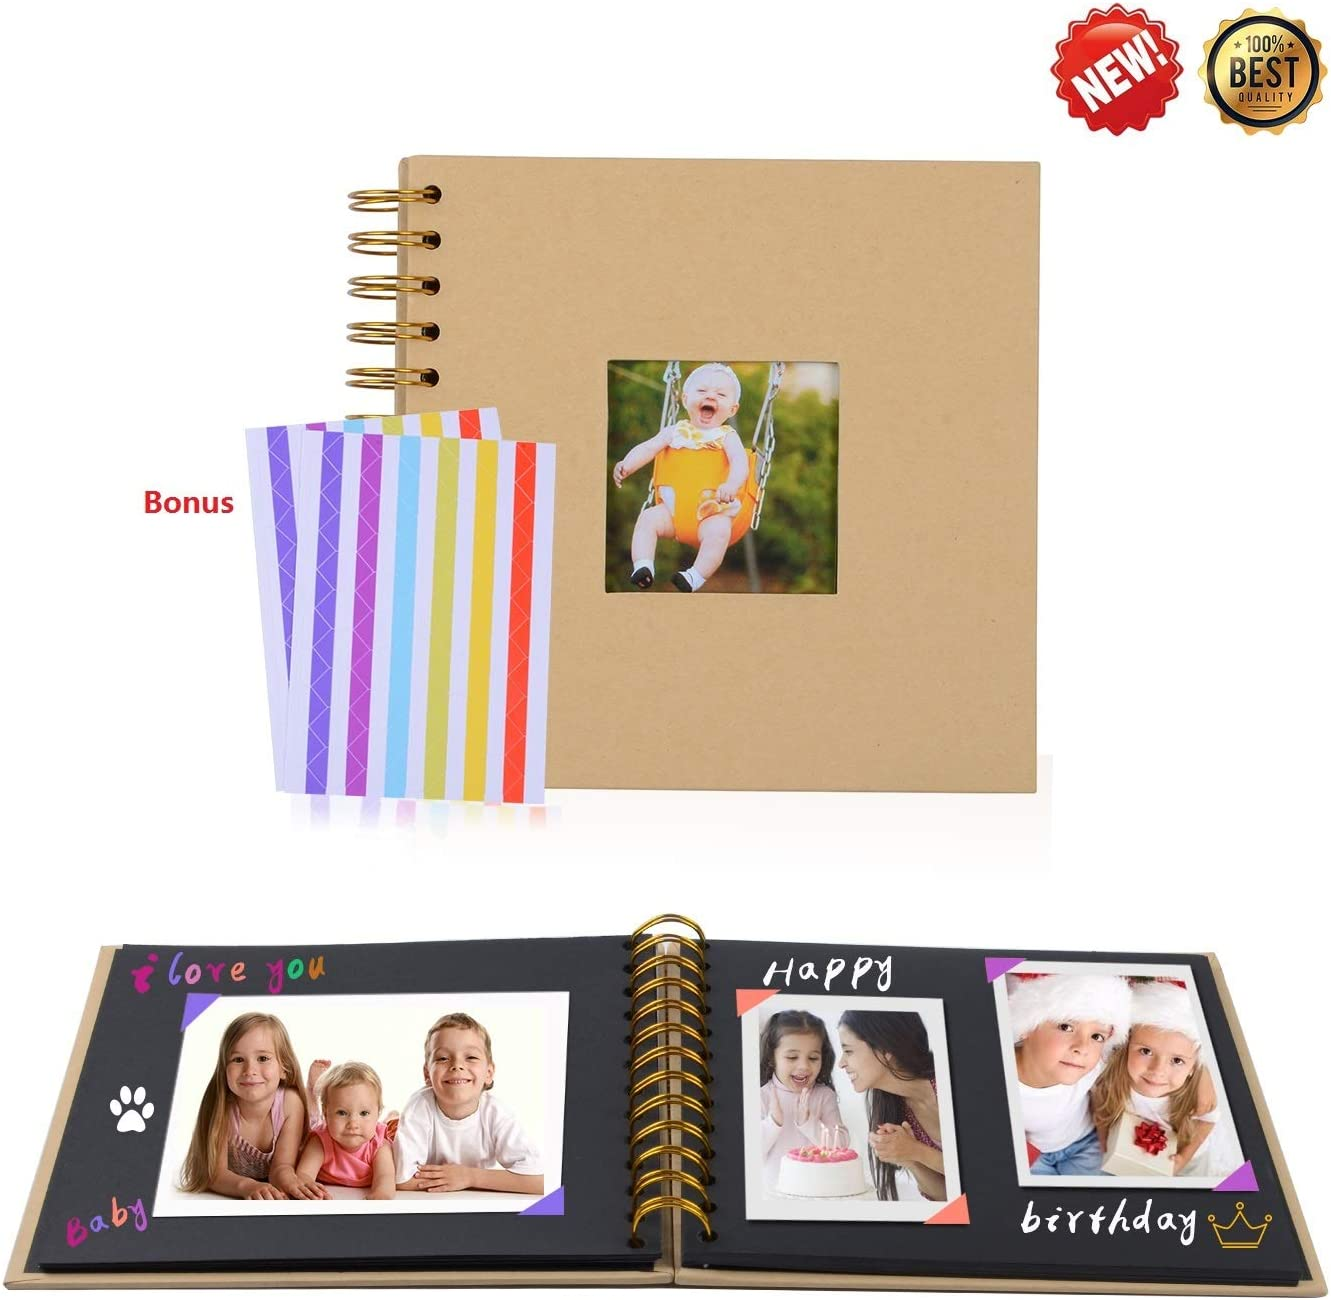 Beautiful DIY Photo Album 7 Styles of Family Baby Lover Children-Wedding Photo Album-Photo Album Scrapbook-Photo Album and Frames-Photo Album Self Adhesive-Photo Album and Pages